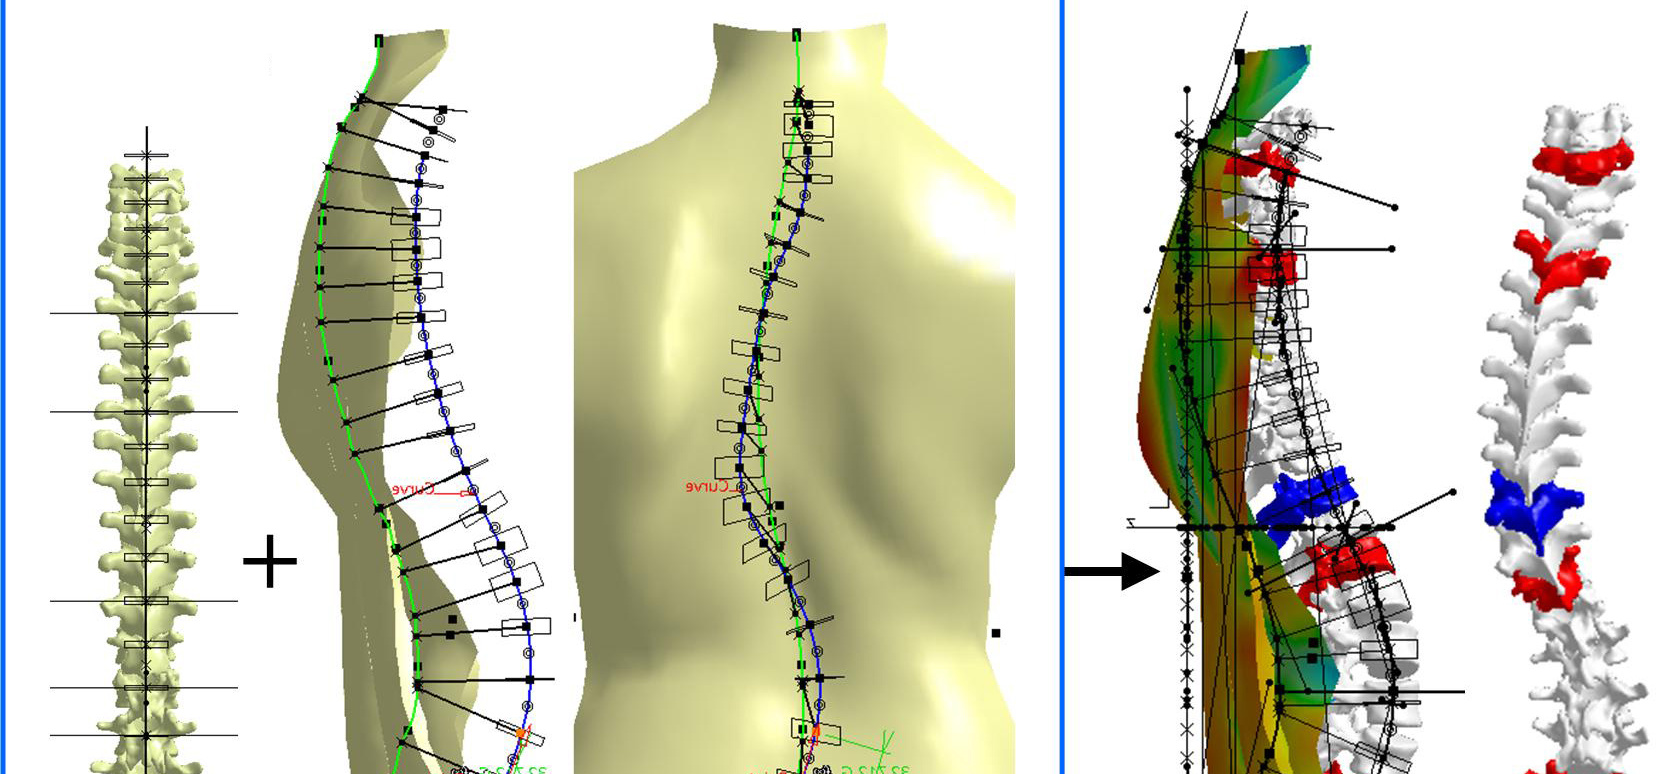 3D Patient-Specific Modeling: Innovative Approach for Scoliosis Diagnosis